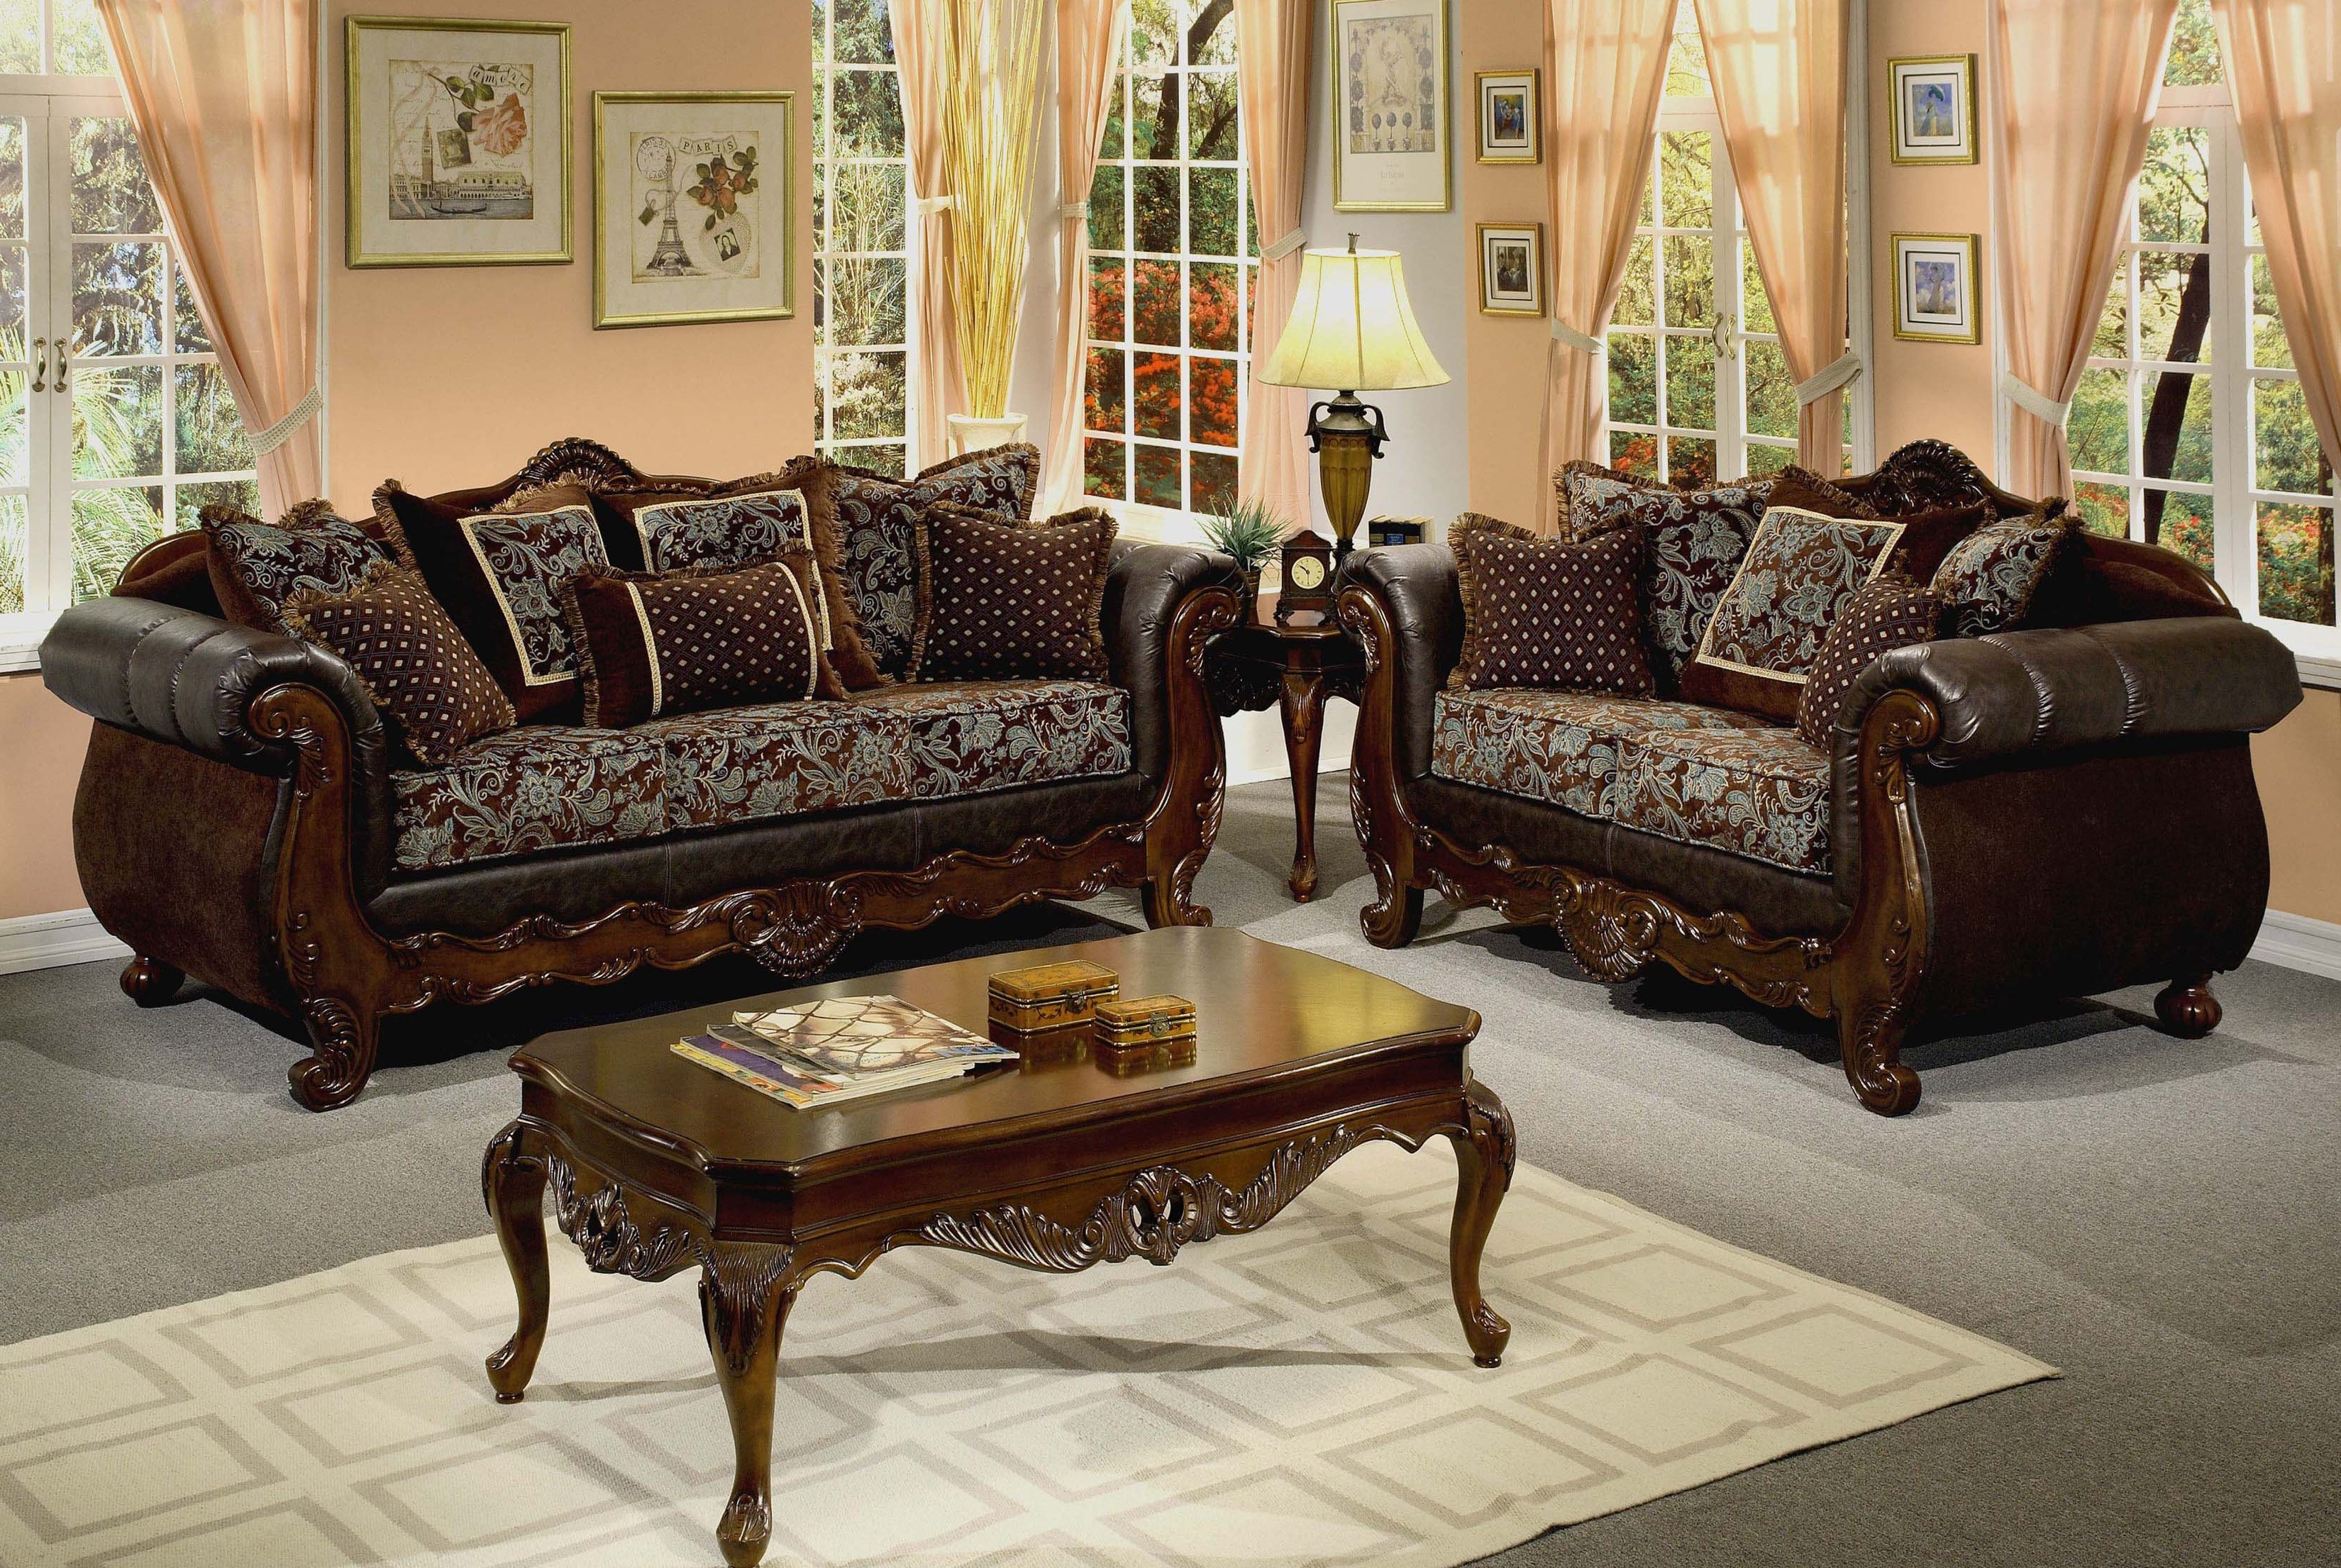 Simple Wooden Sofa Sets For Living Room Price Home Combo pertaining to 14 Smart Ideas How to Improve Wood Living Room Set